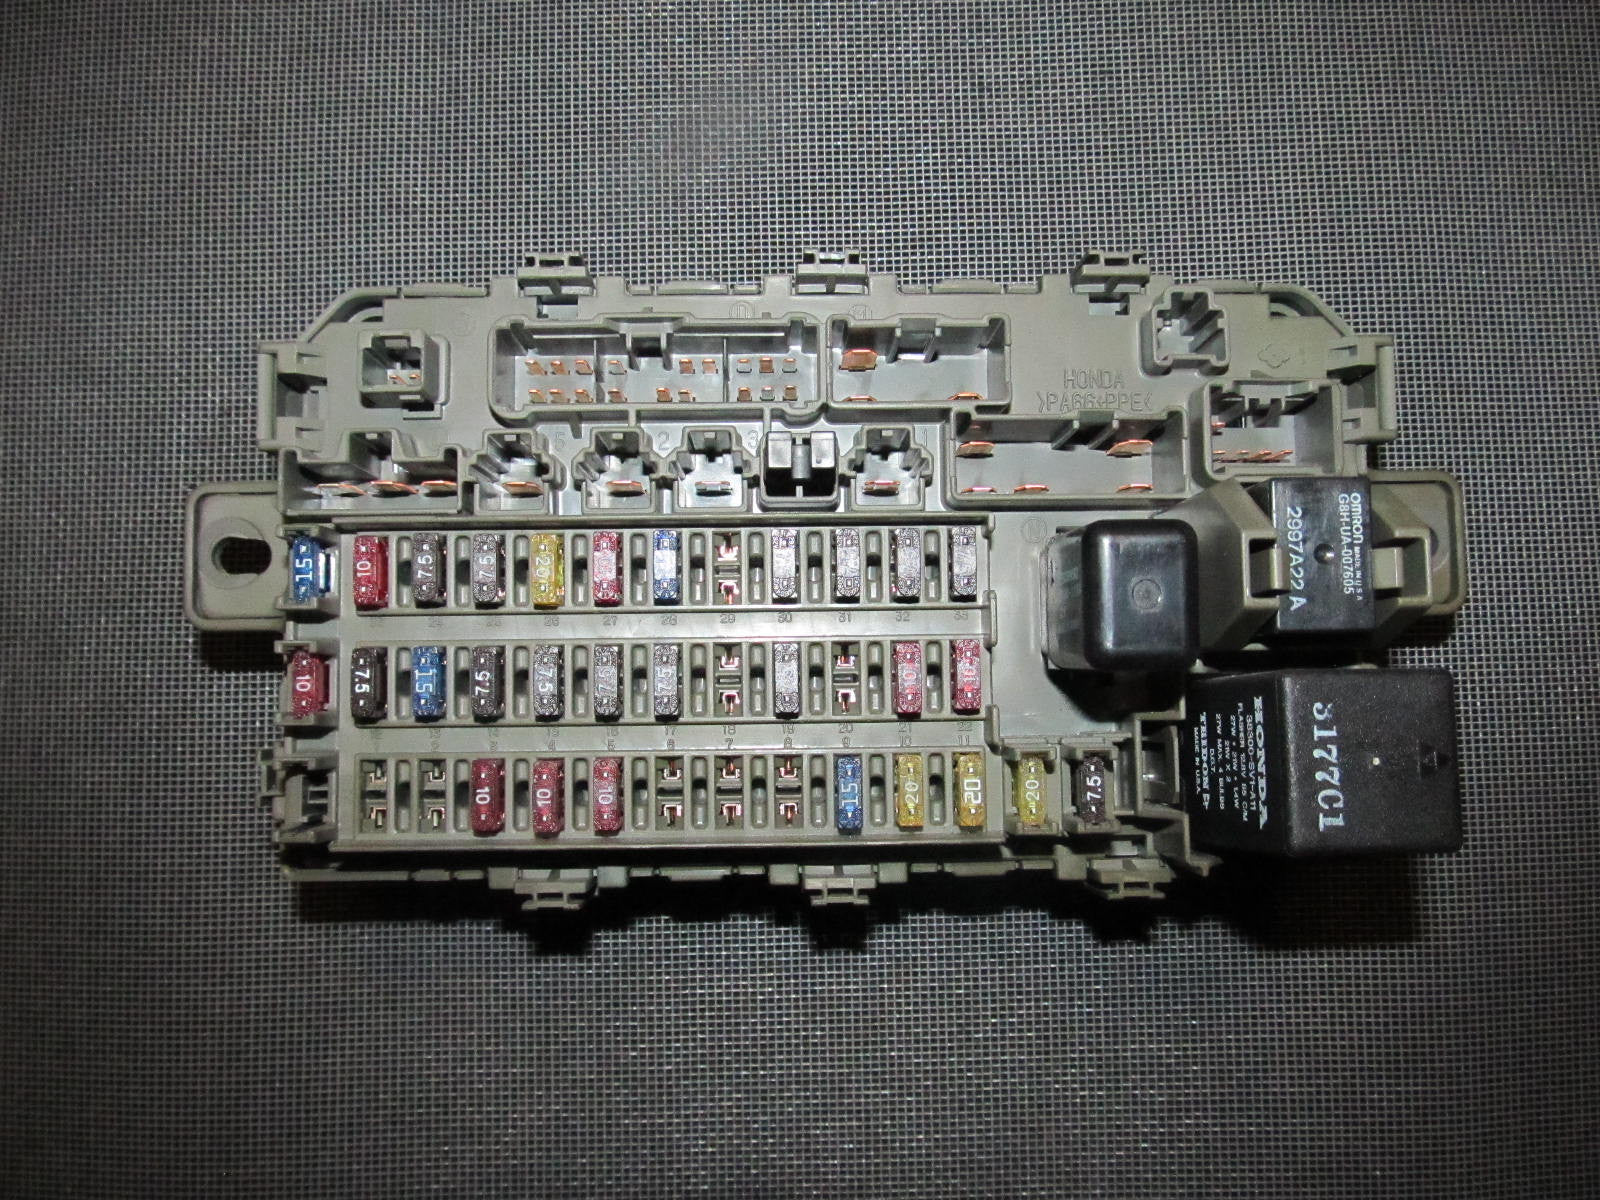 IMG_9687_e40c3657 cee5 4226 9211 04a229811583?v=1405129915 96 97 98 99 00 honda civic oem interior fuse box with relay 96 honda civic fuse box at reclaimingppi.co